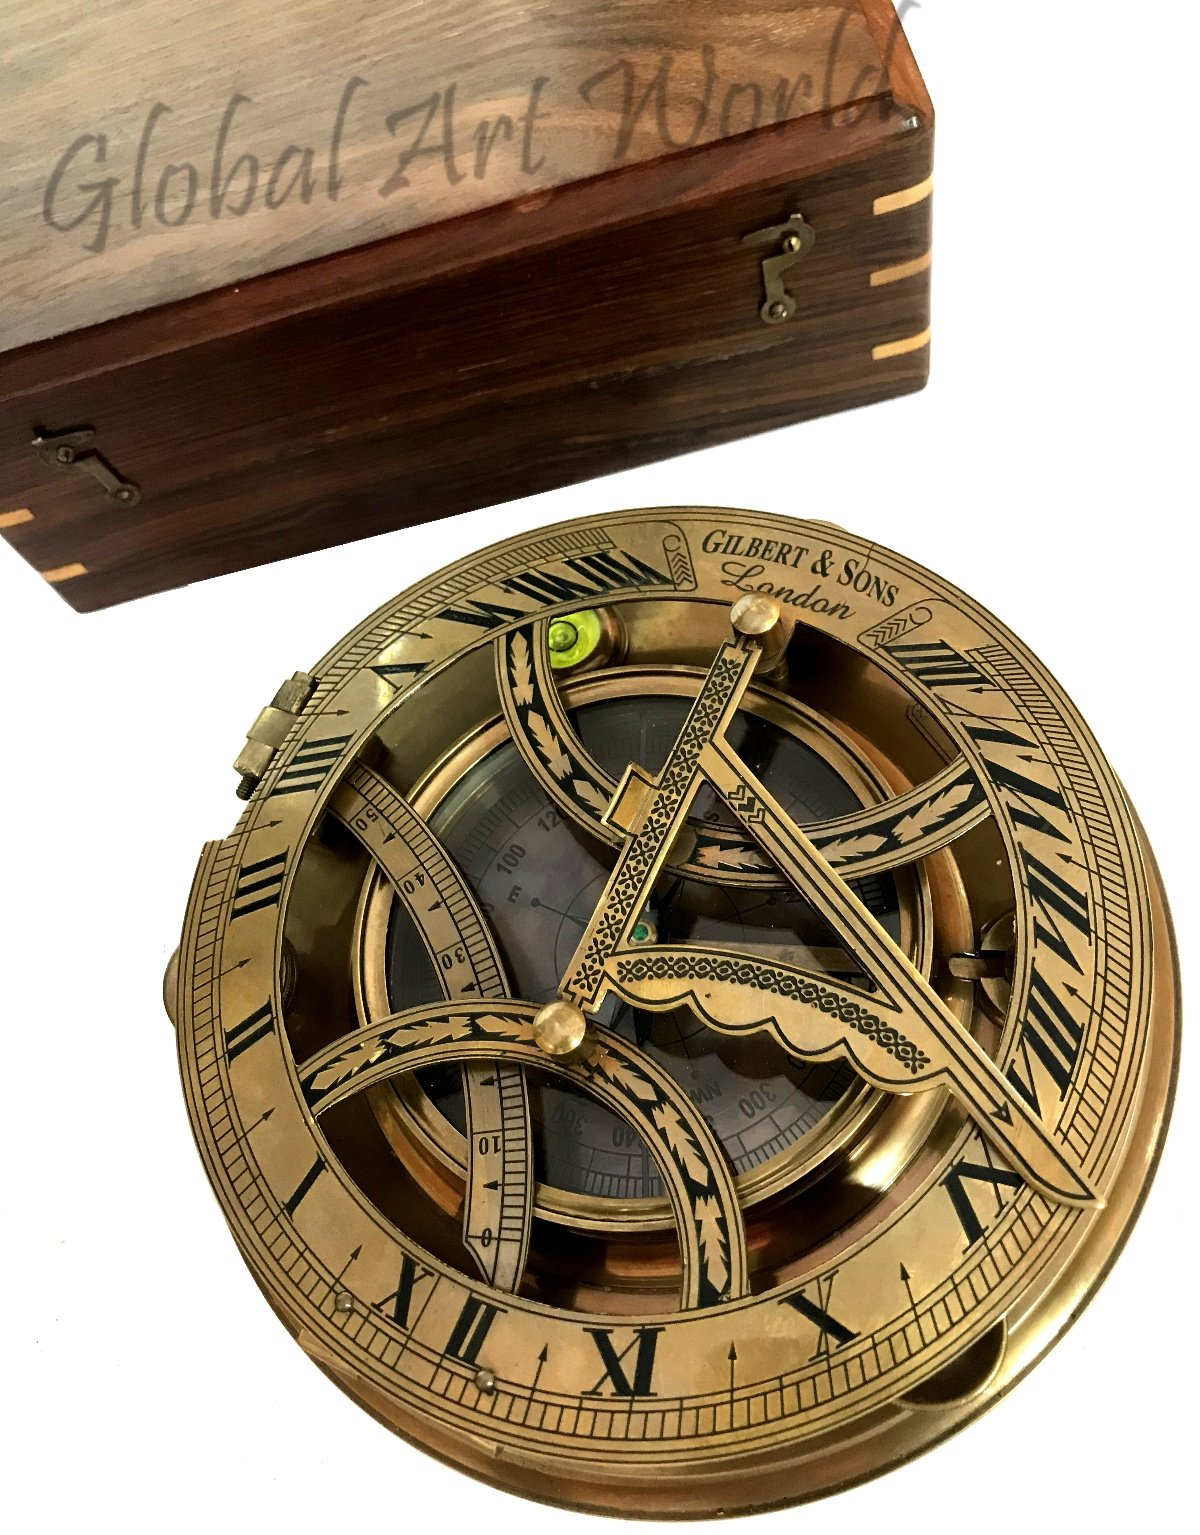 Global Art World Nautical Old Maritime Vintage Brown Antique Brass Collectible Authentic Gilbert & Son London Sunclock Sundial Compass Along With A Box SC 097